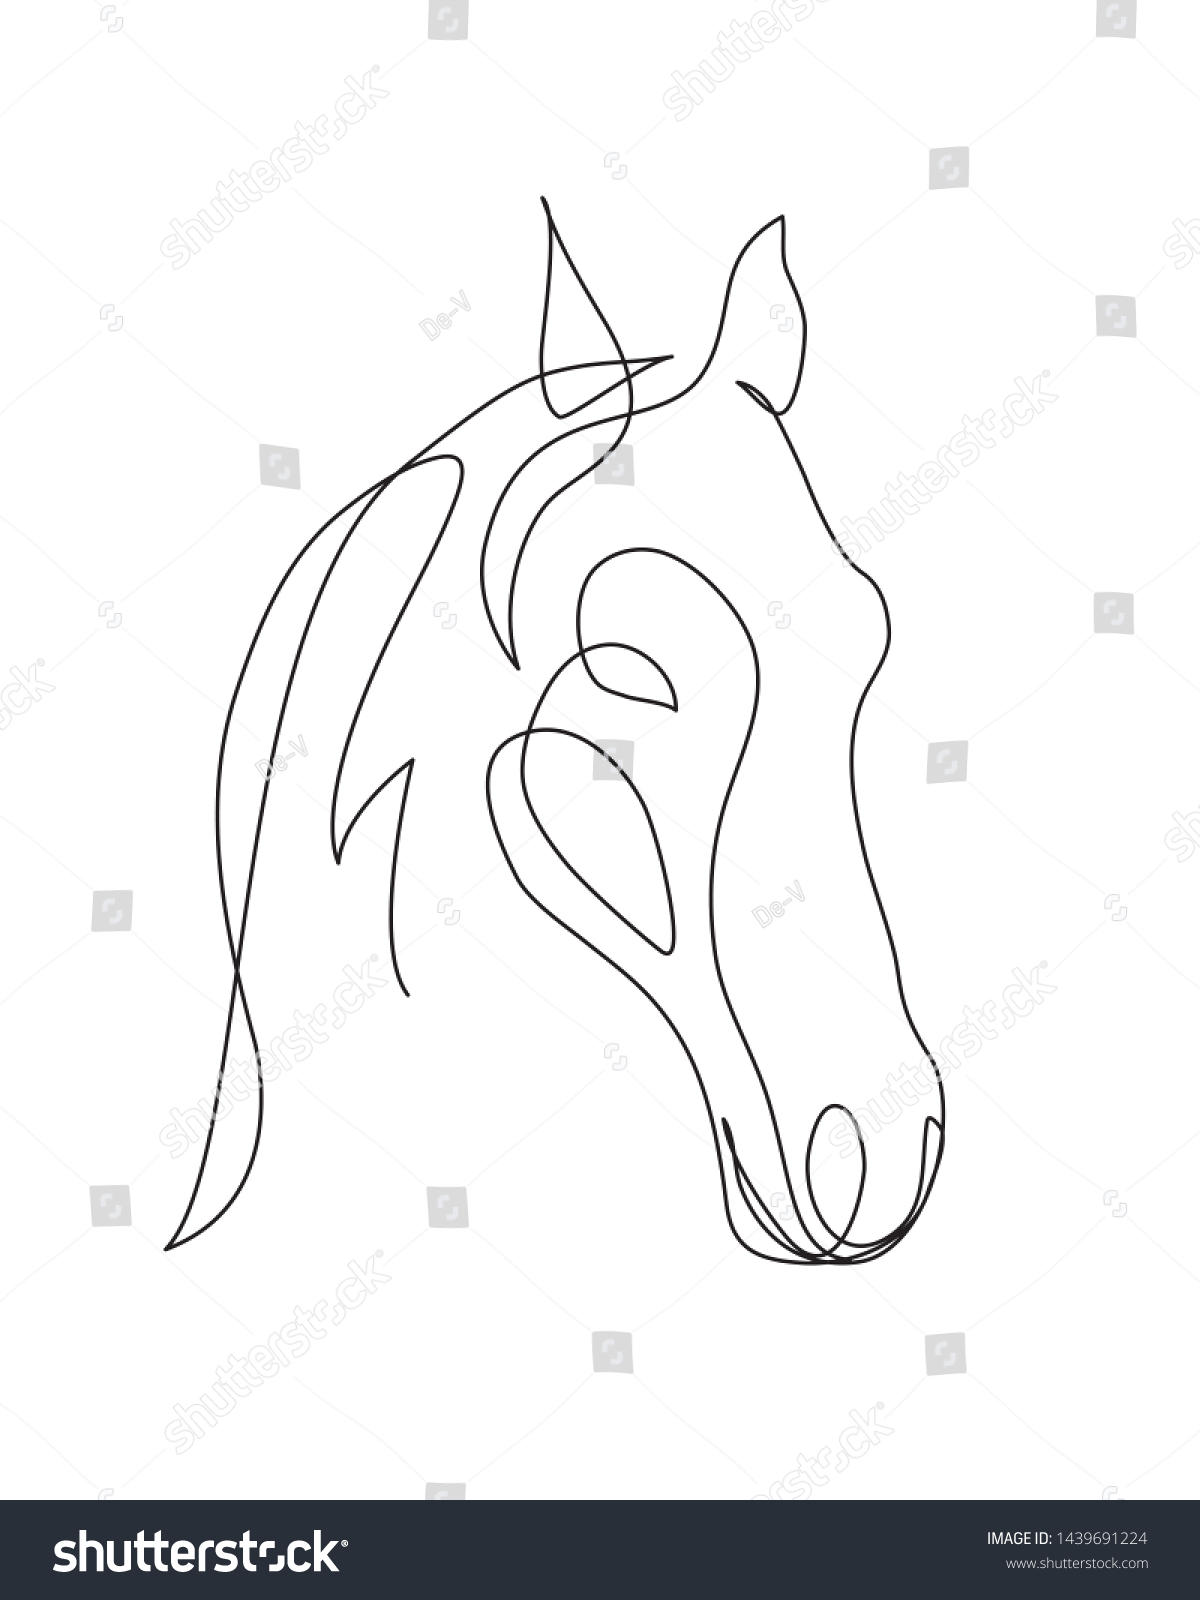 Horse Head Continuous One Line Drawing Stock Vector Royalty Free 1439691224